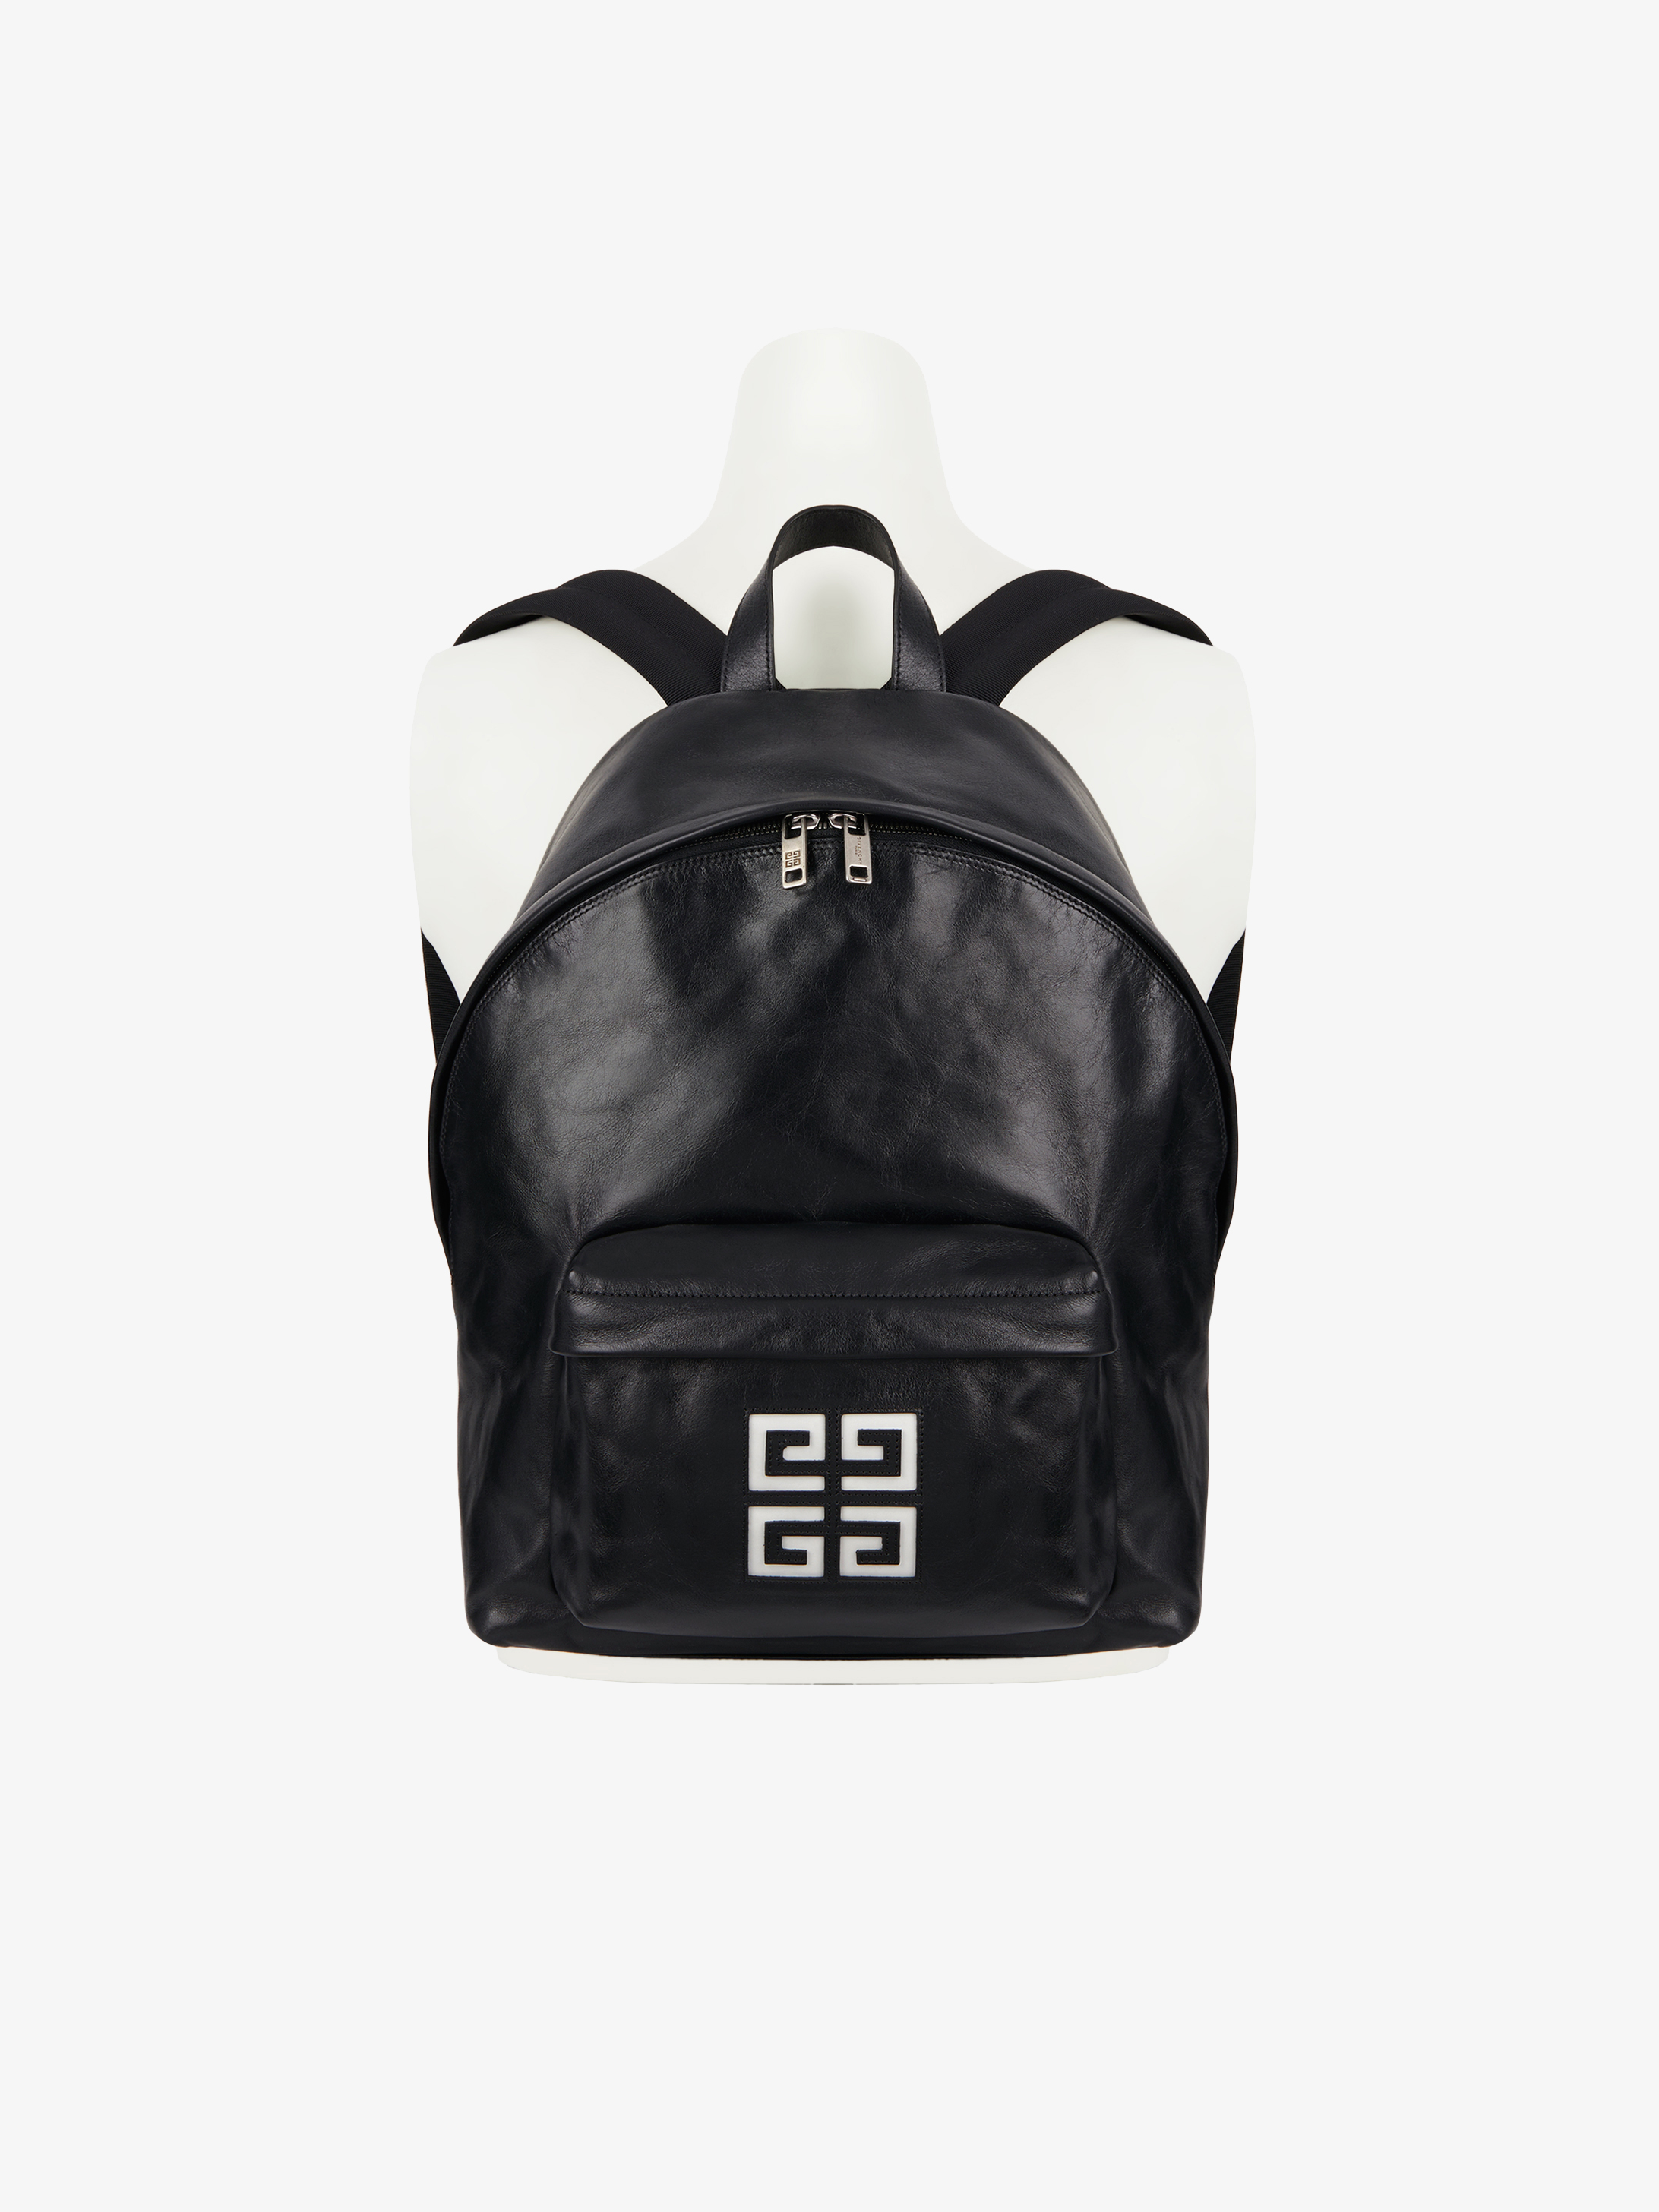 4G backpack in leather